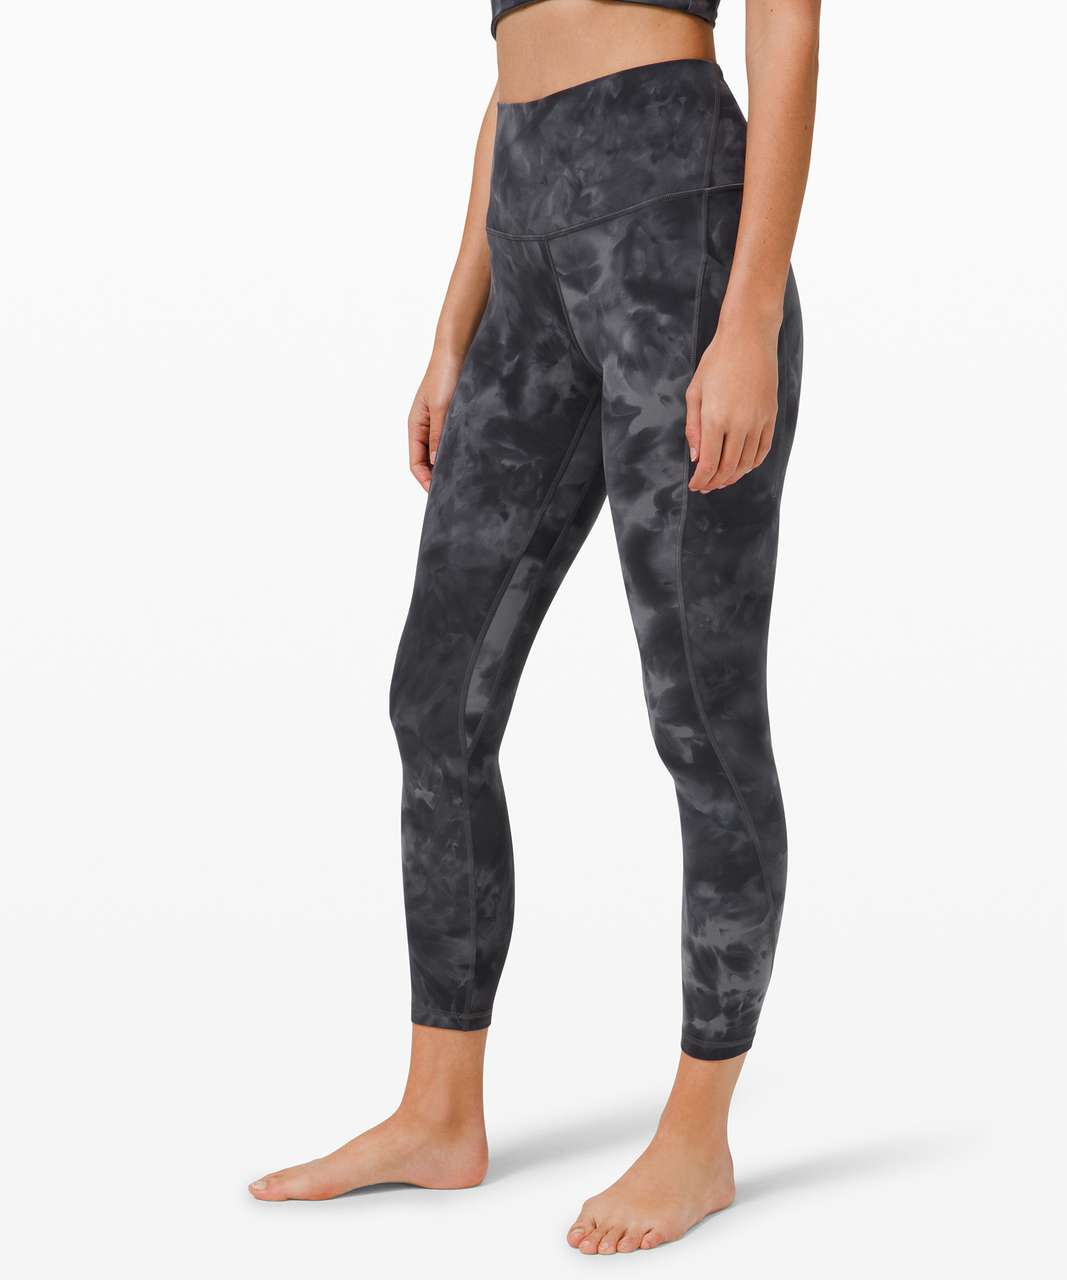 "Lululemon Align High Rise Pant with Pockets 25"" - Diamond Dye Pitch Grey Graphite Grey"